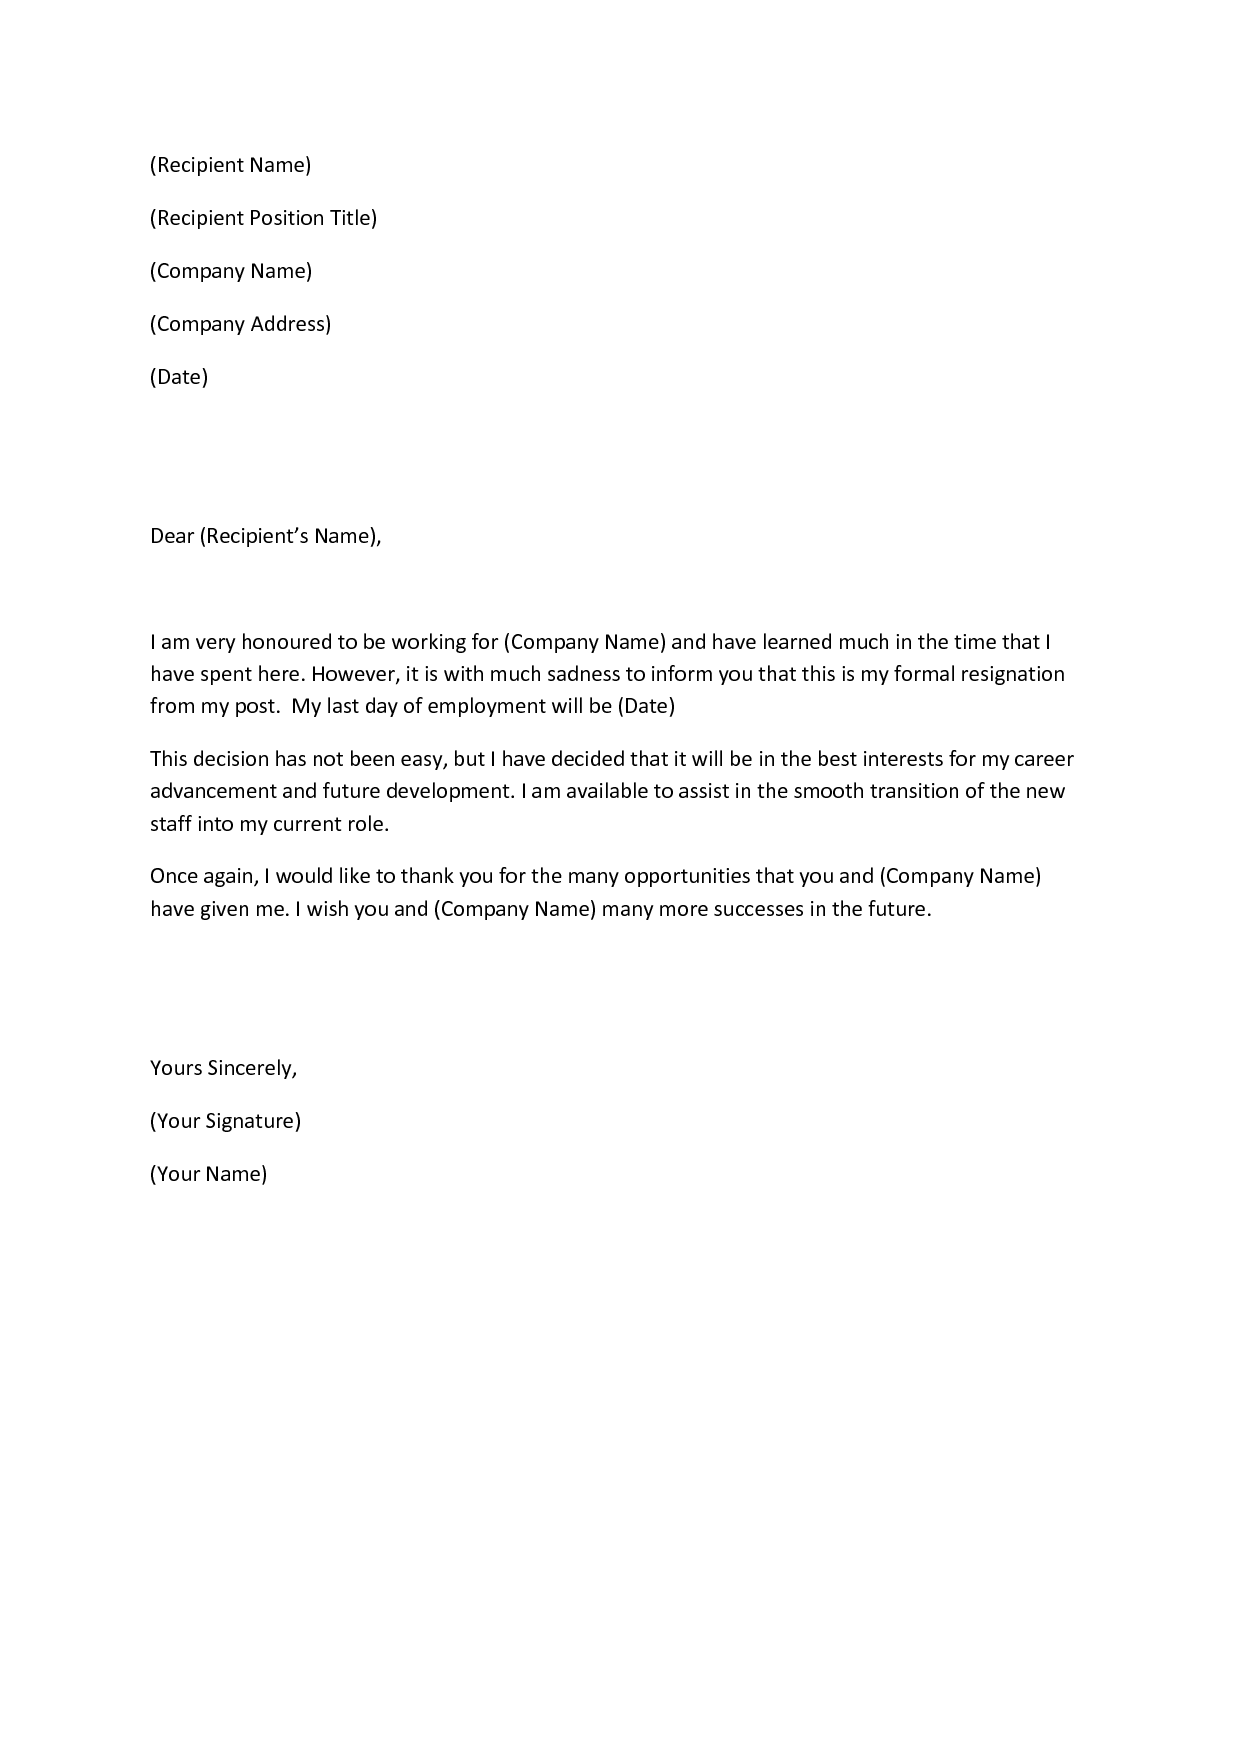 Writing a heartfelt resignation letters in pdf resign letter 6 altavistaventures Image collections